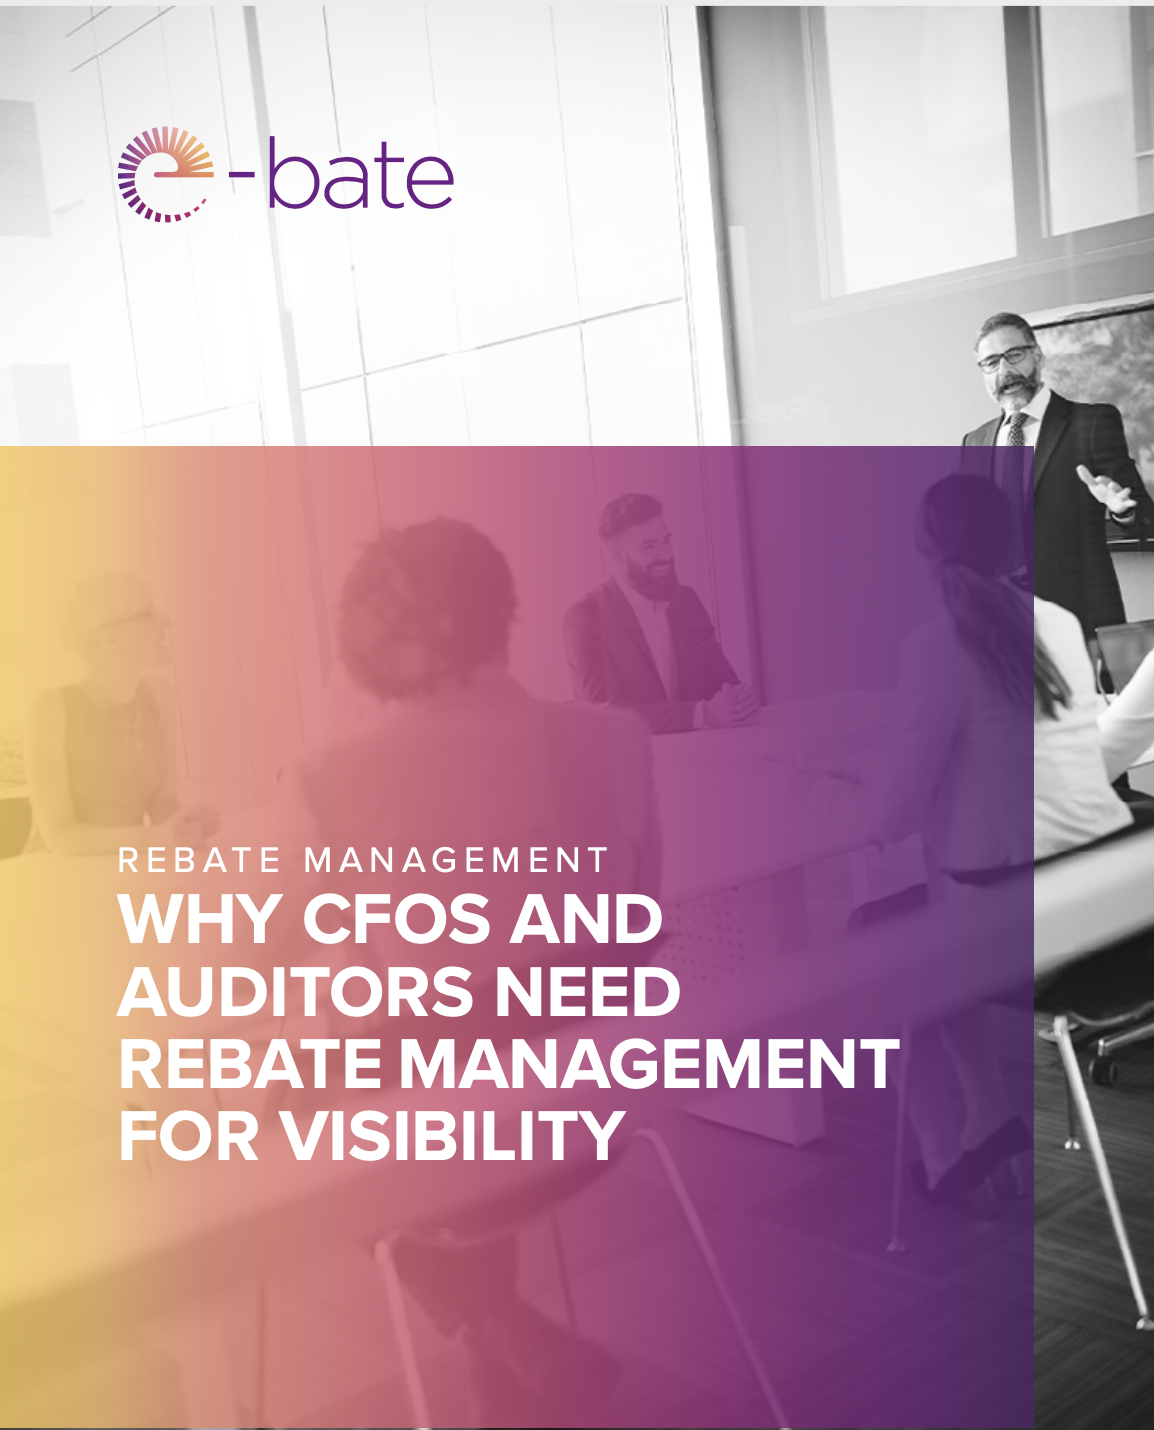 Why CFOS And Auditors Need Rebate Management For Visibility